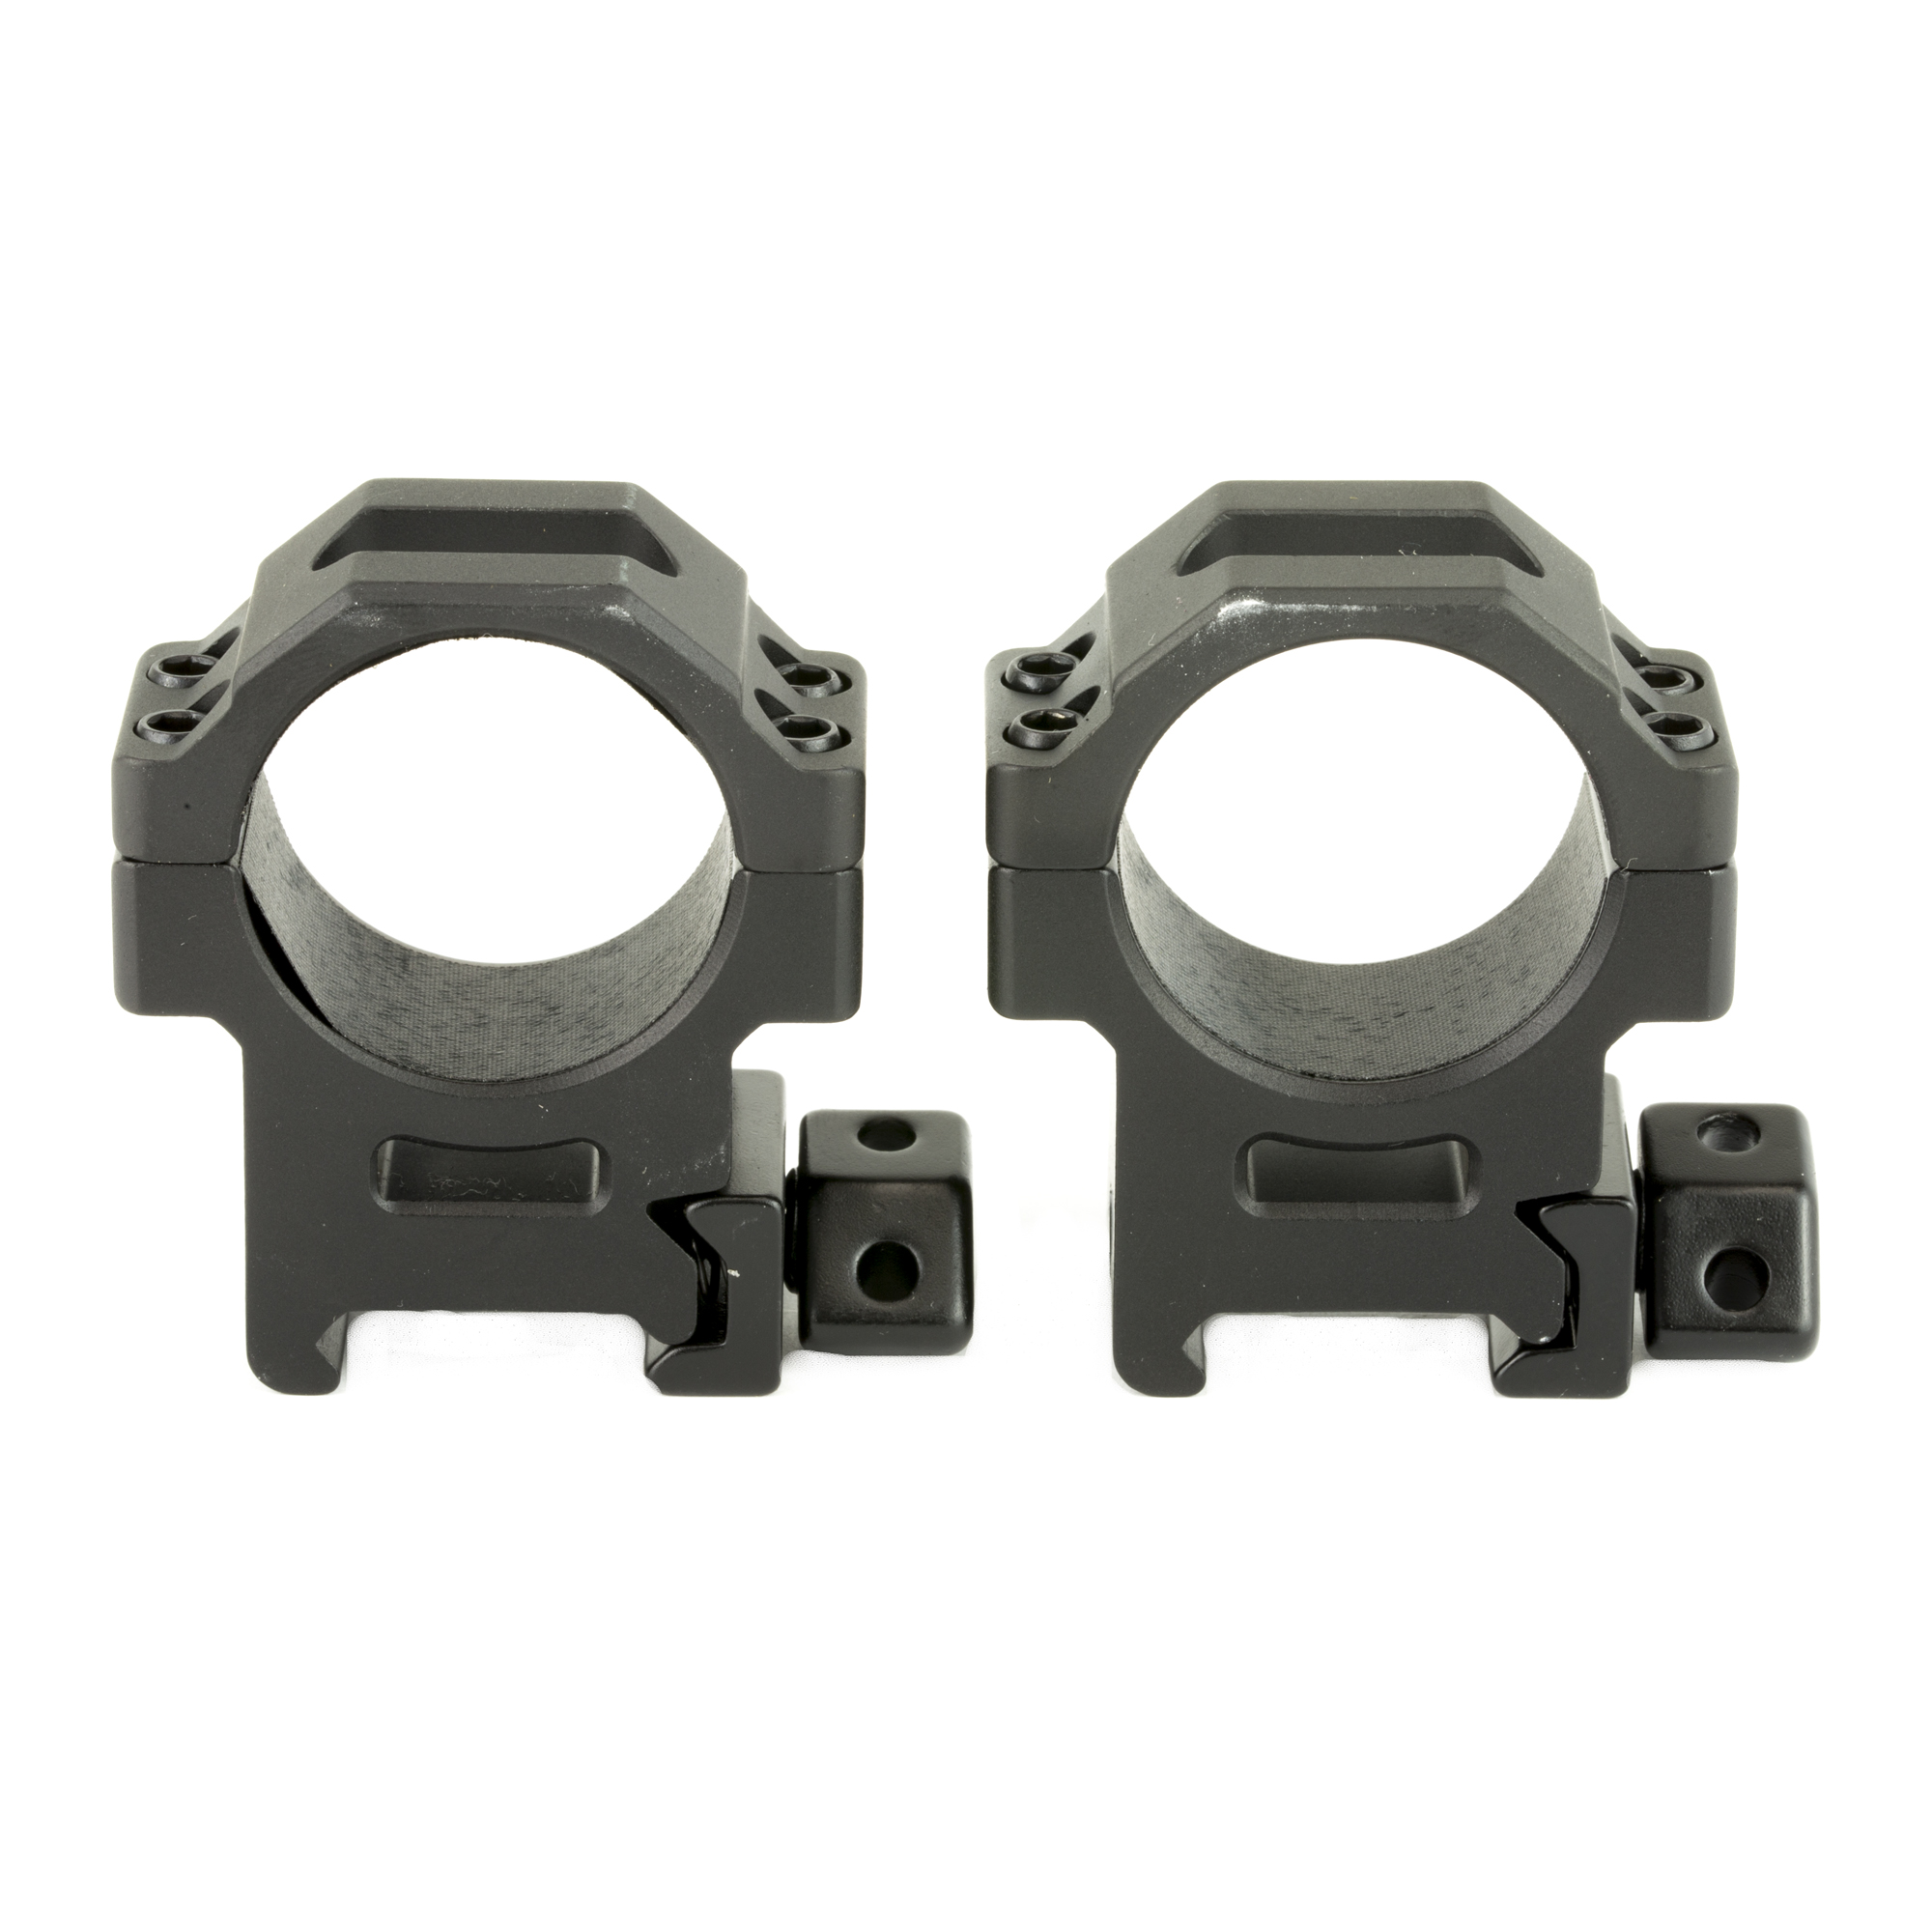 UTG pro max picatinny scope rings are quality rings made for performance.